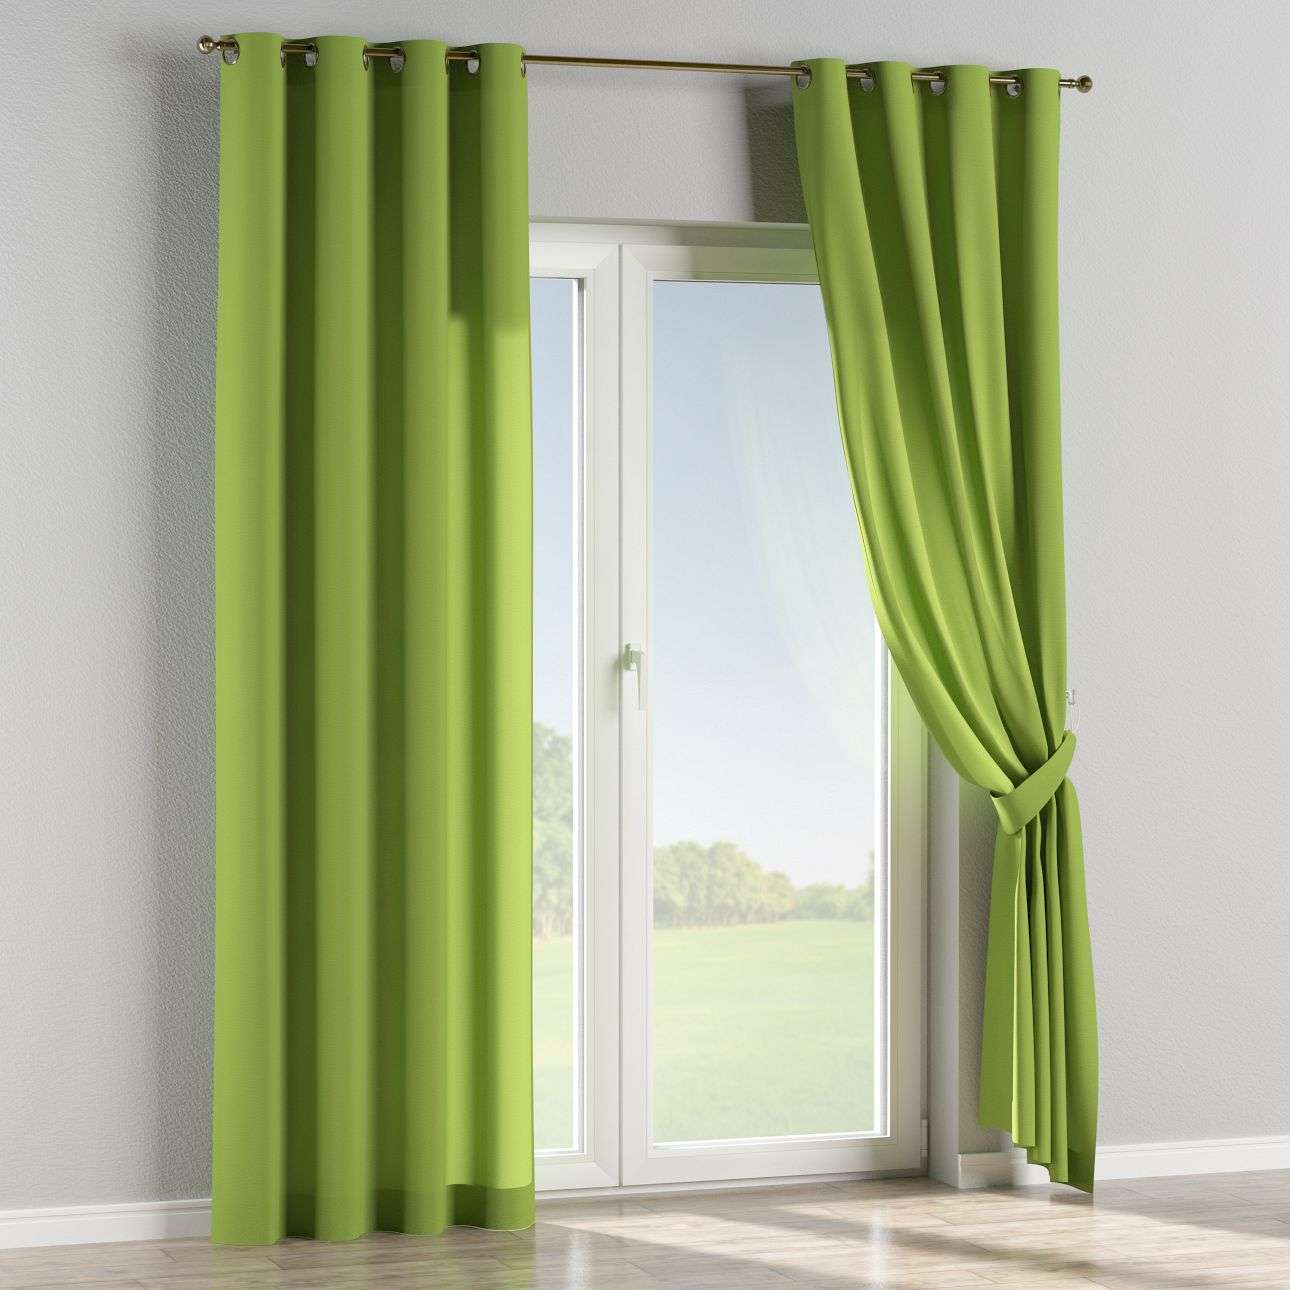 Eyelet curtains in collection Quadro, fabric: 136-37